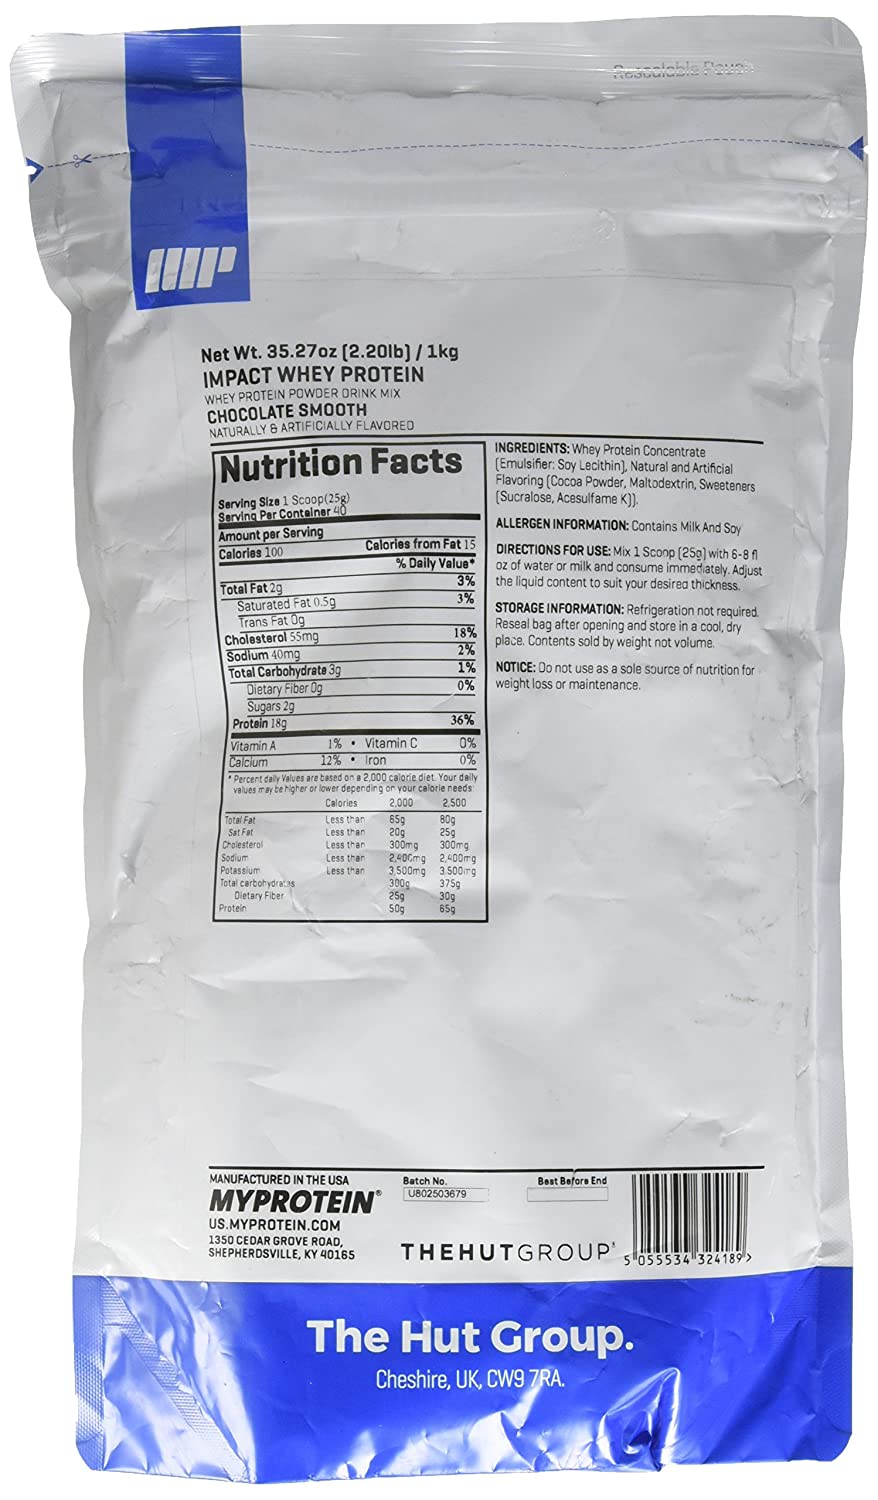 Amazon.com: MyProtein Impact Whey Protein , Cookies & Cream, Pouch, 2.2lbs: Health & Personal Care